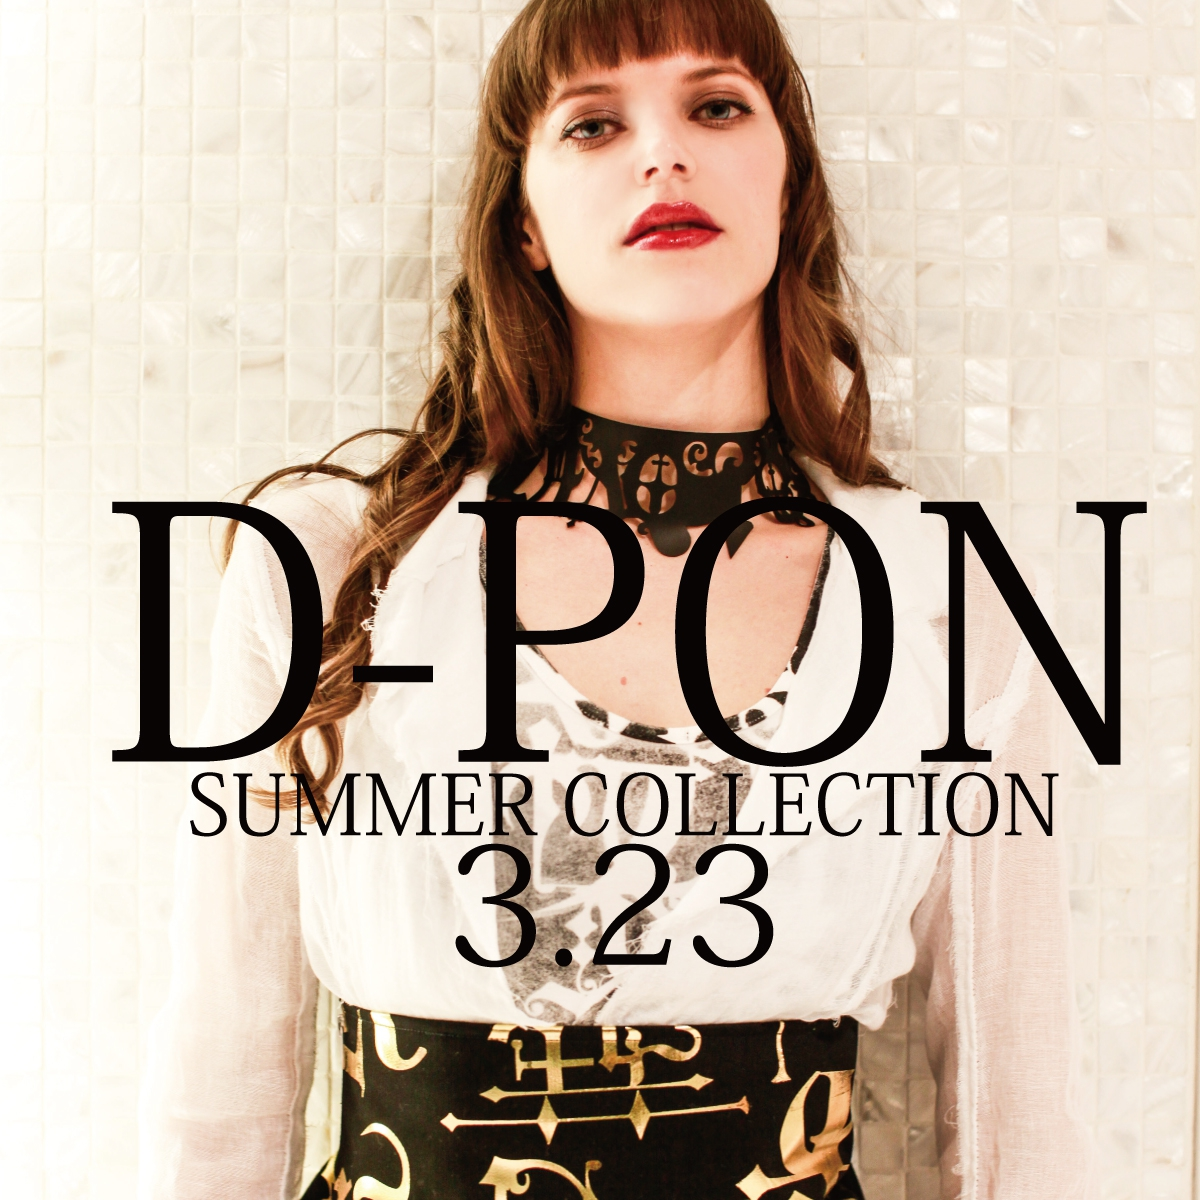 0323 【D.pon SUMMER COLLECTION2】